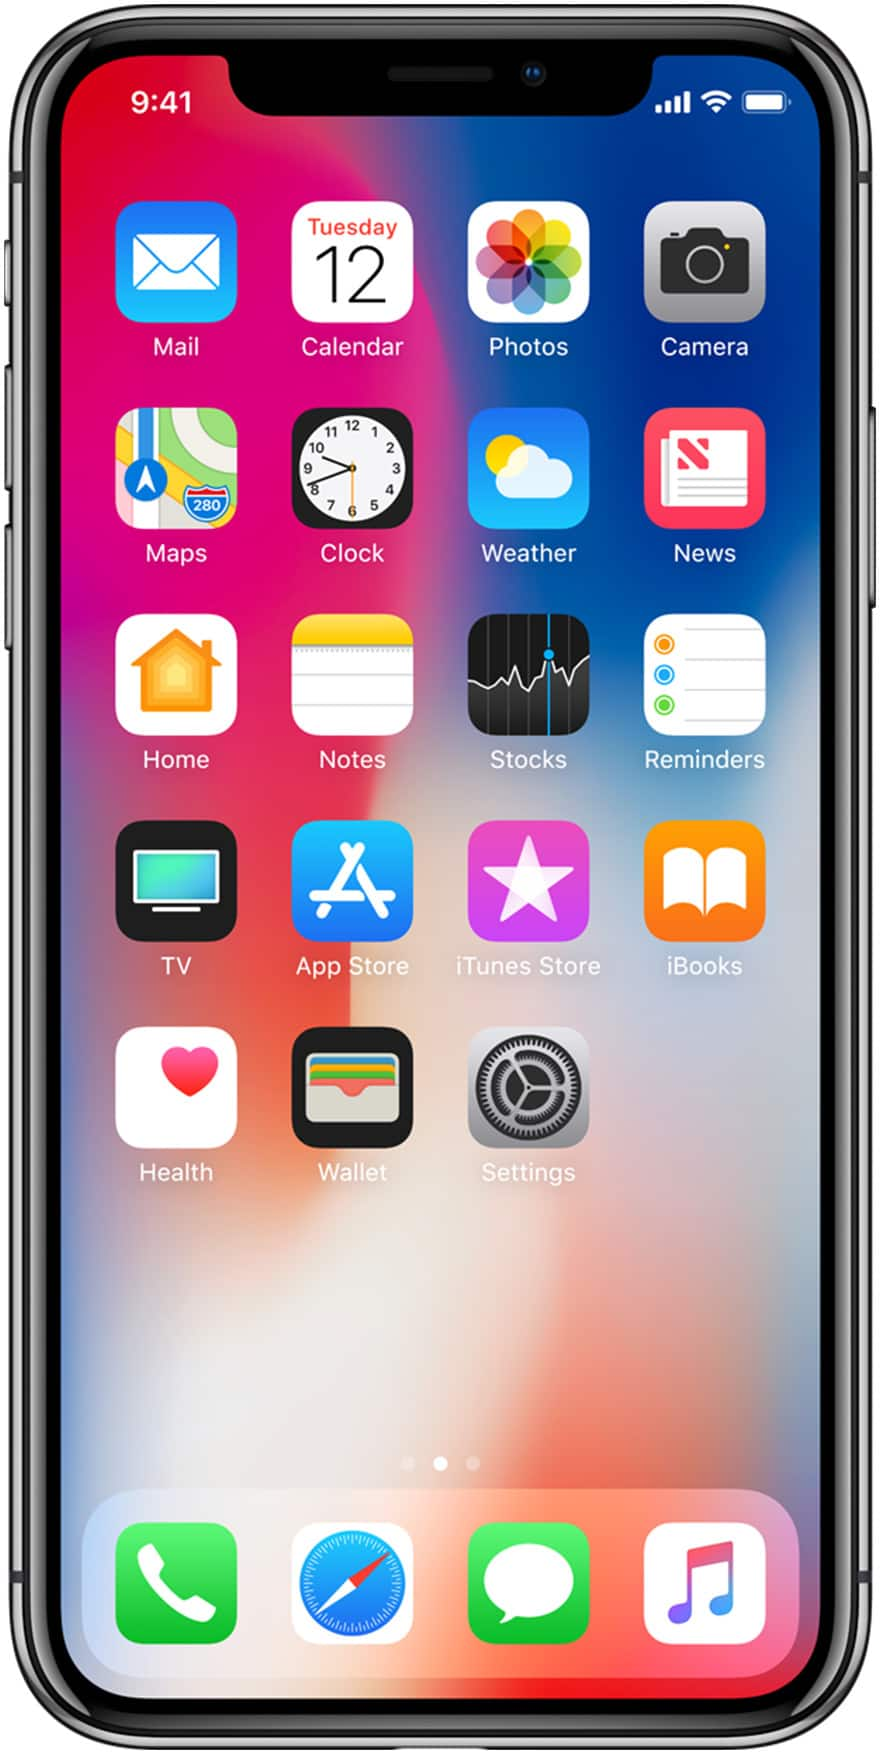 iphone x lifestyle image